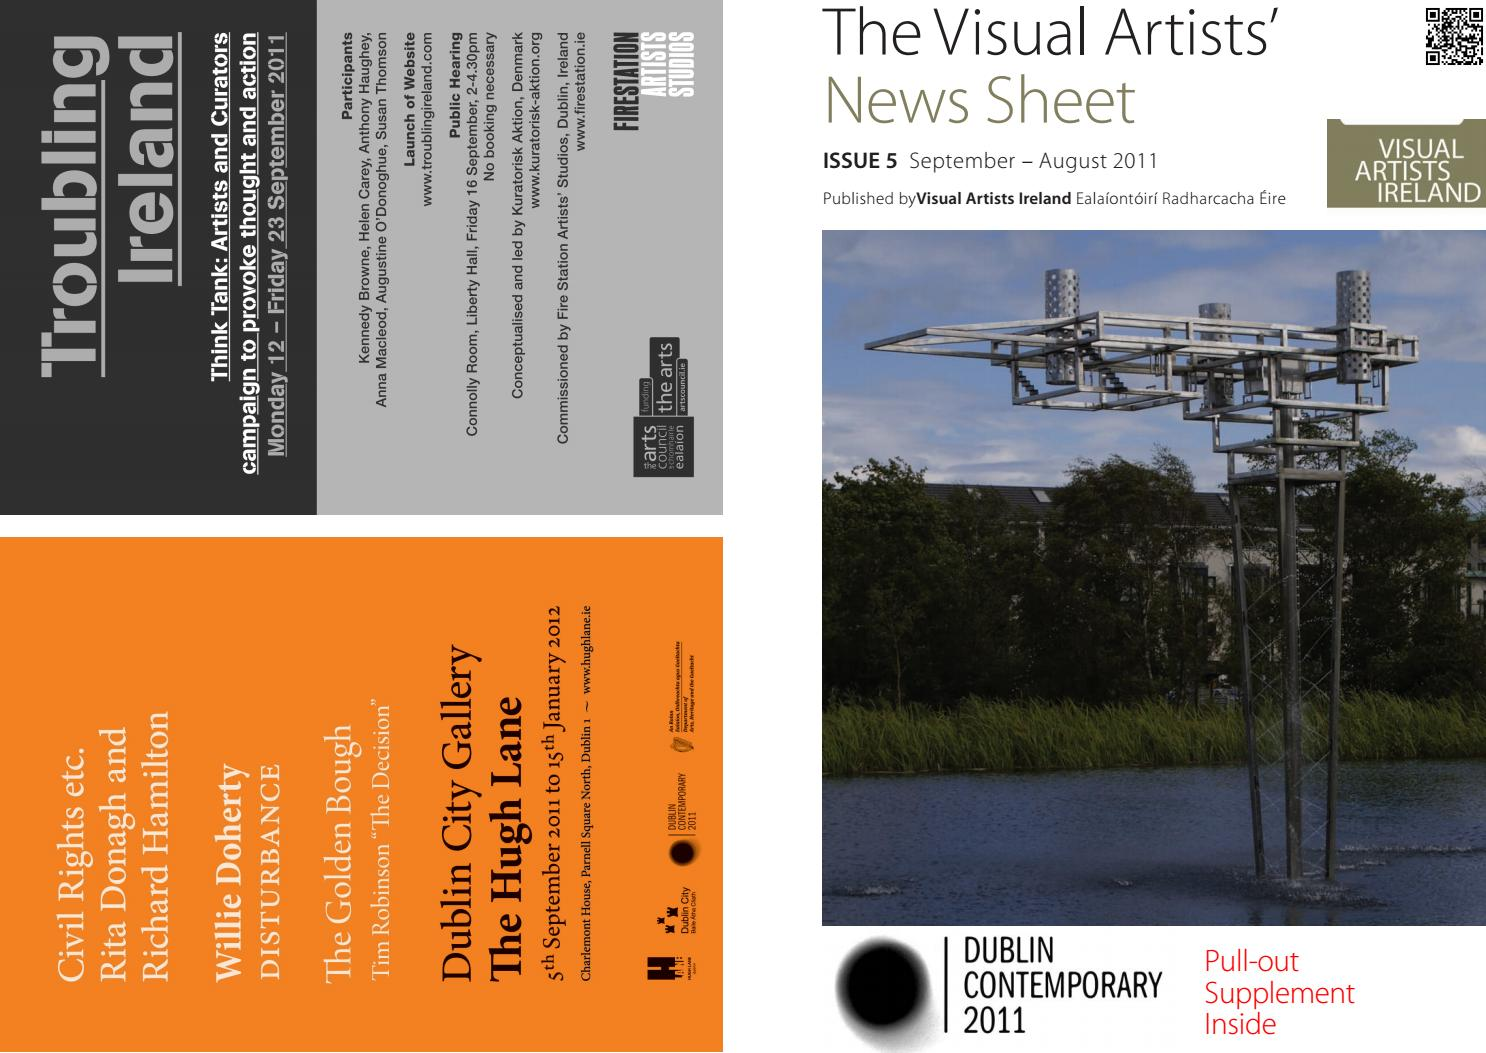 Visual Artists News Sheet 2011 September October By Ellies Intercom Wiring Diagram Visualartistsireland Issuu